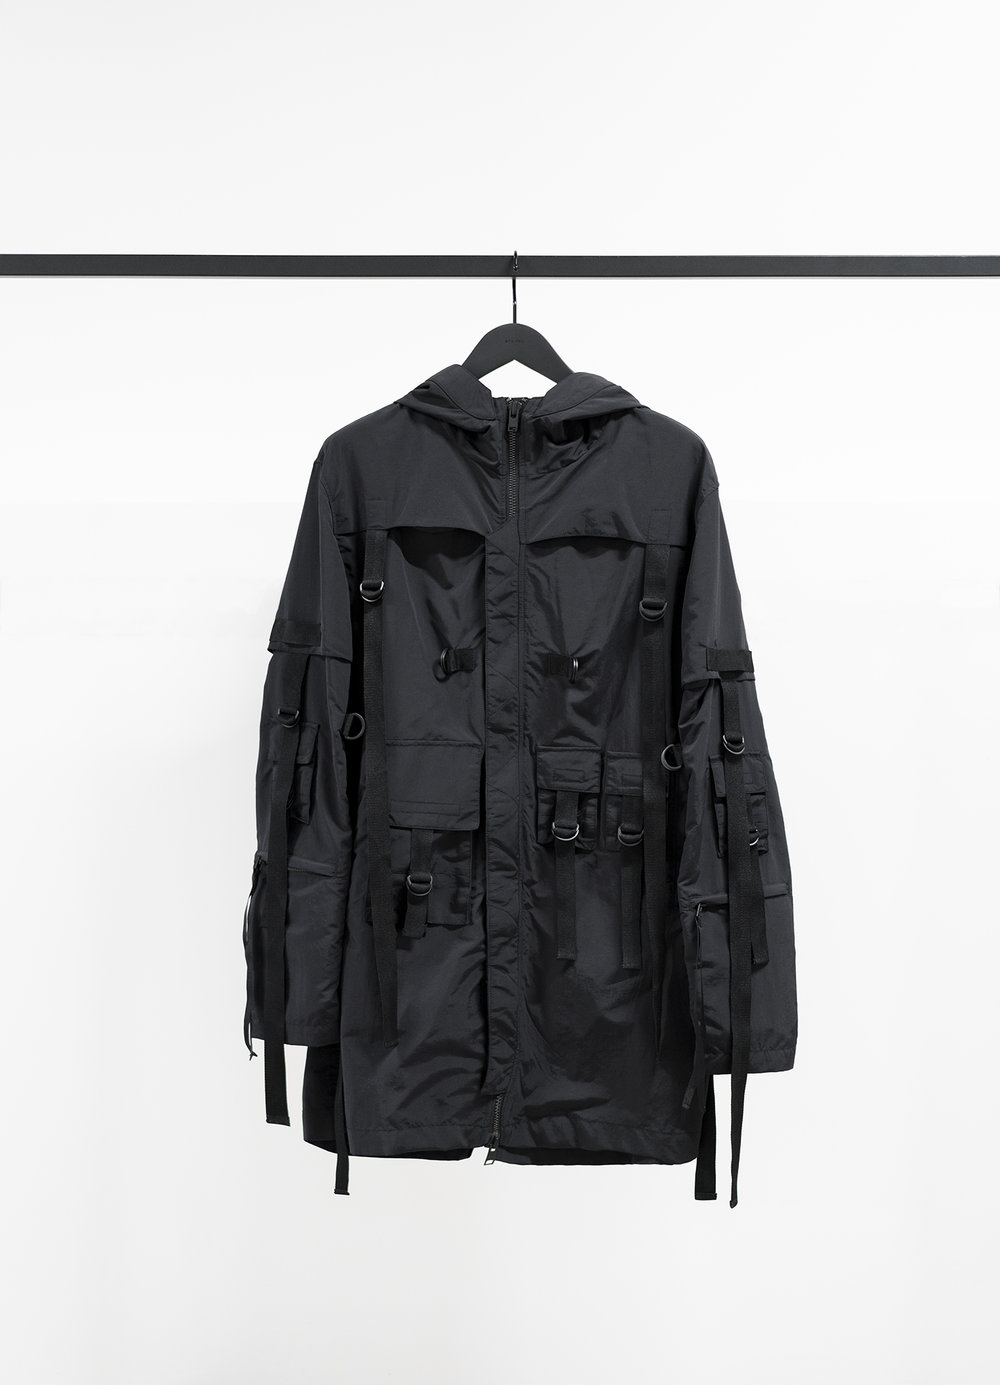 Strapped_Trench_Black_001.jpg